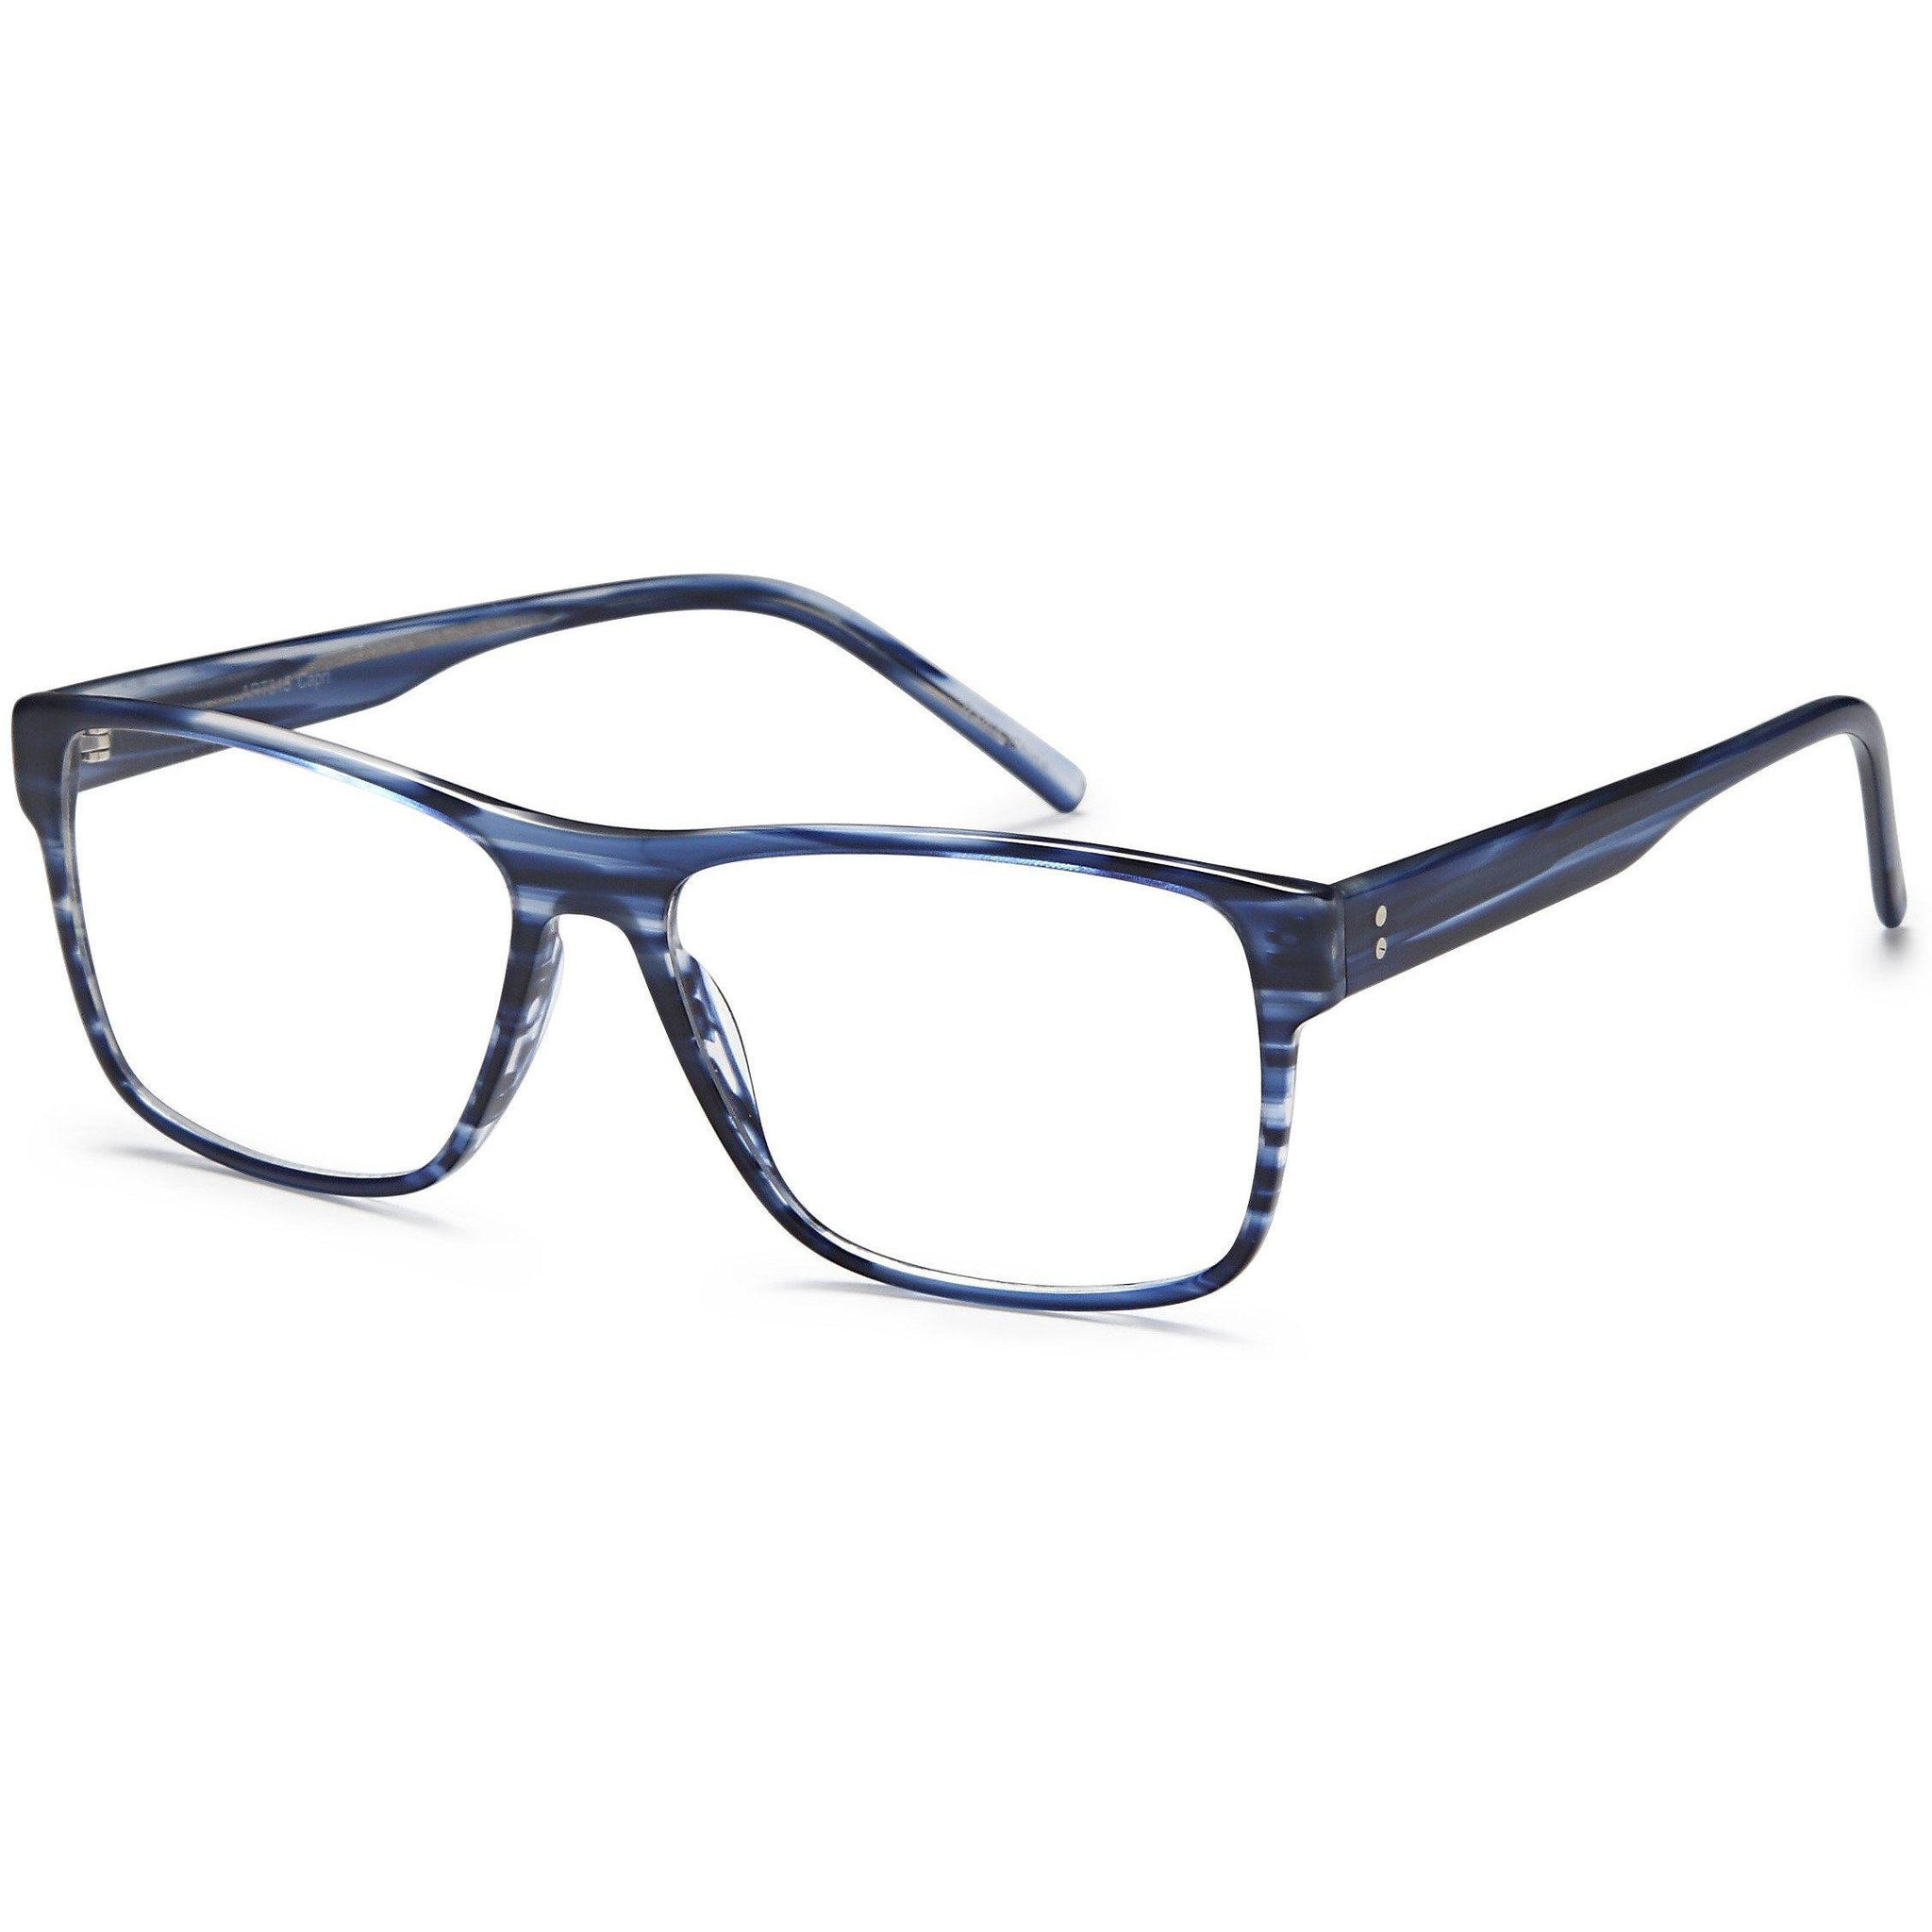 Sophistics Prescription Glasses ART 315 Frame